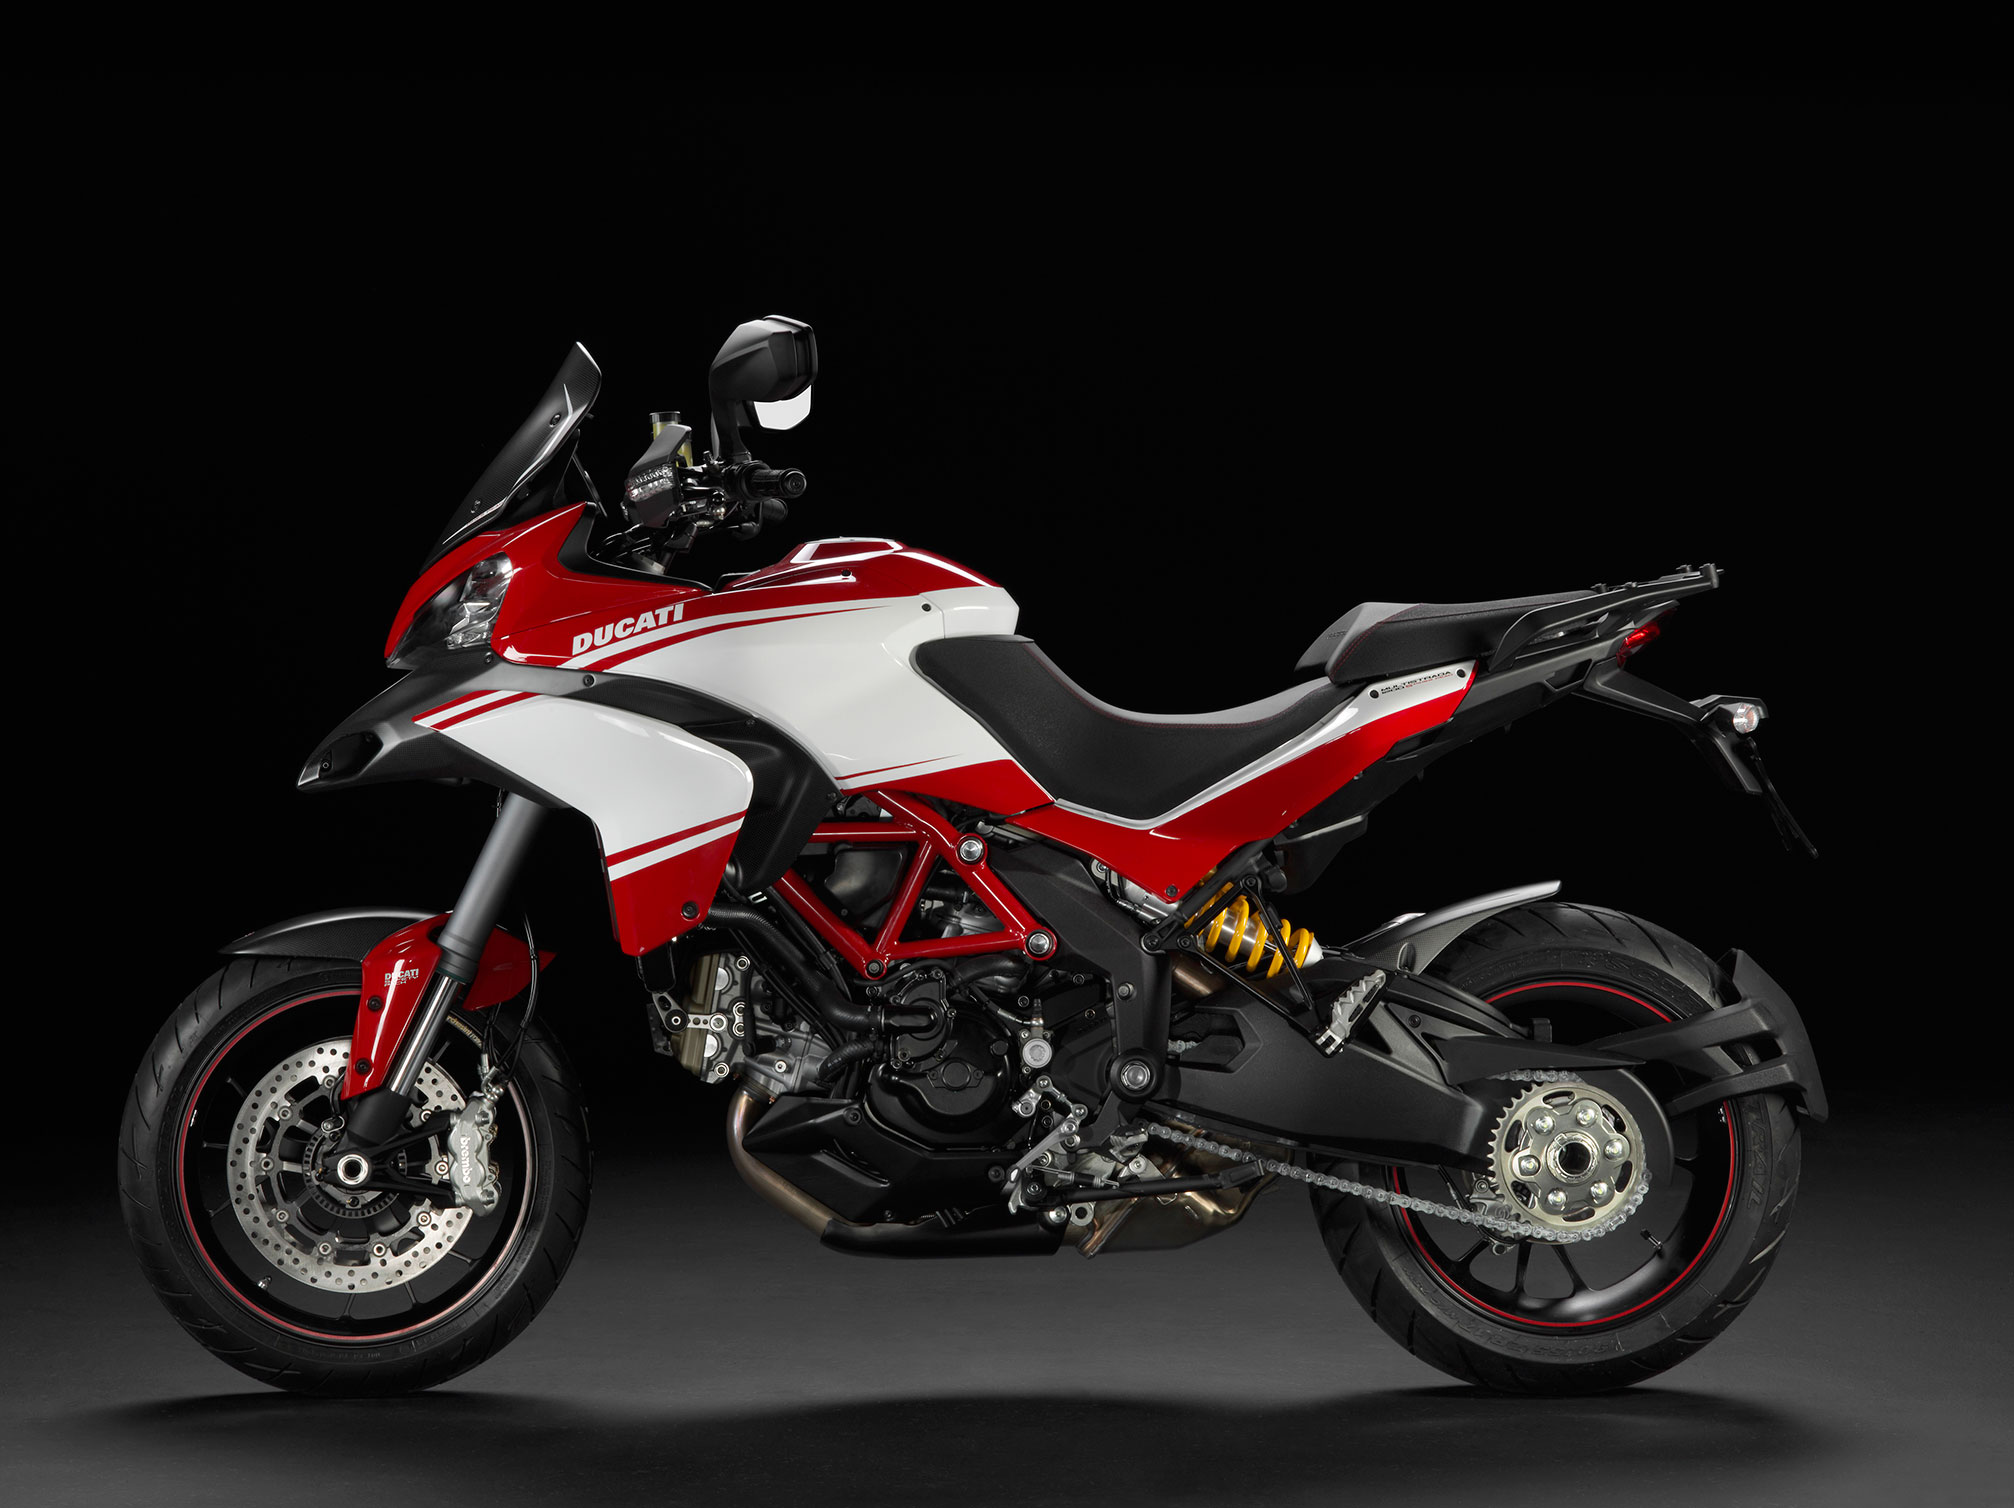 ducati multistrada 1200 s pikes peak specs 2013 2014. Black Bedroom Furniture Sets. Home Design Ideas